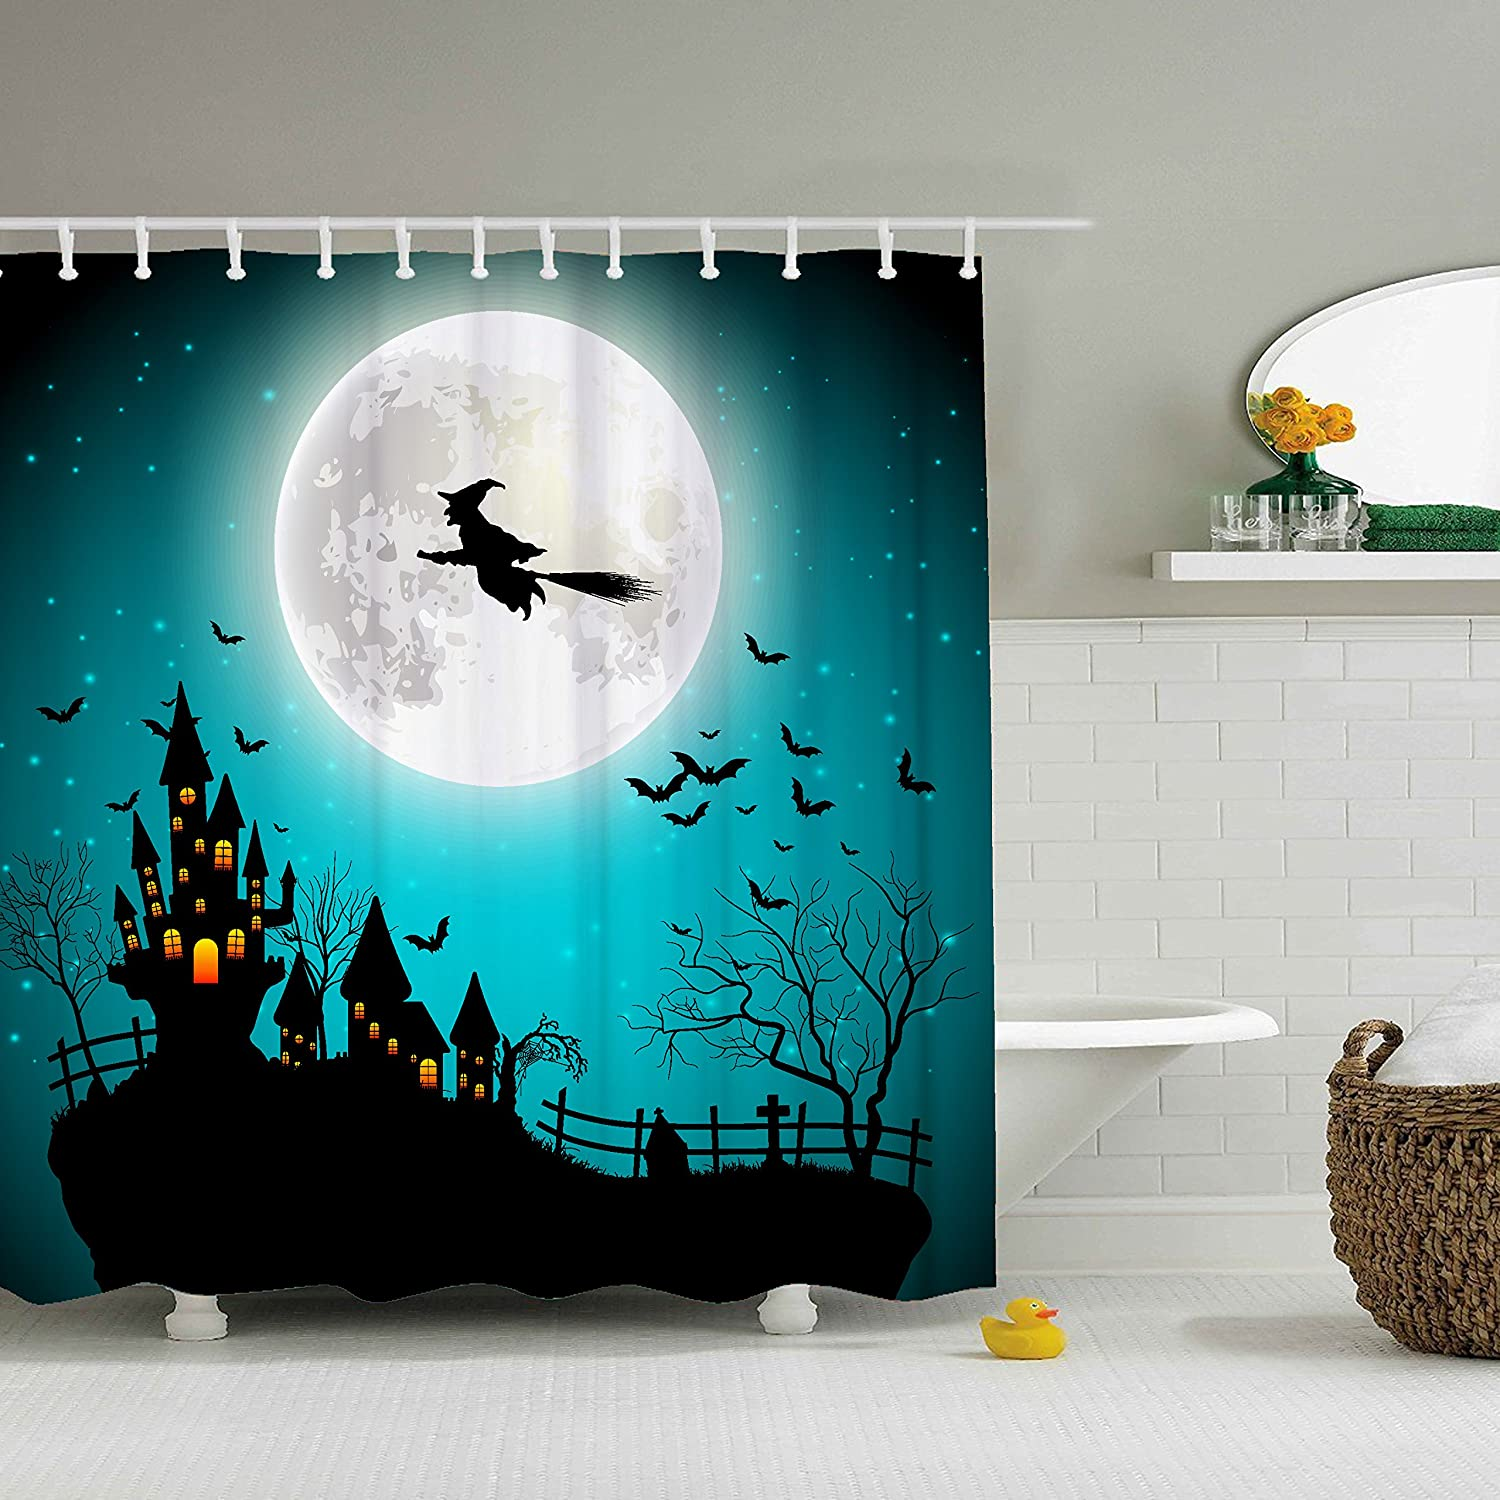 ZBLX Vintage Halloween sold out Shower Curtain Resistant 2021 spring and summer new Waterproof Fab -